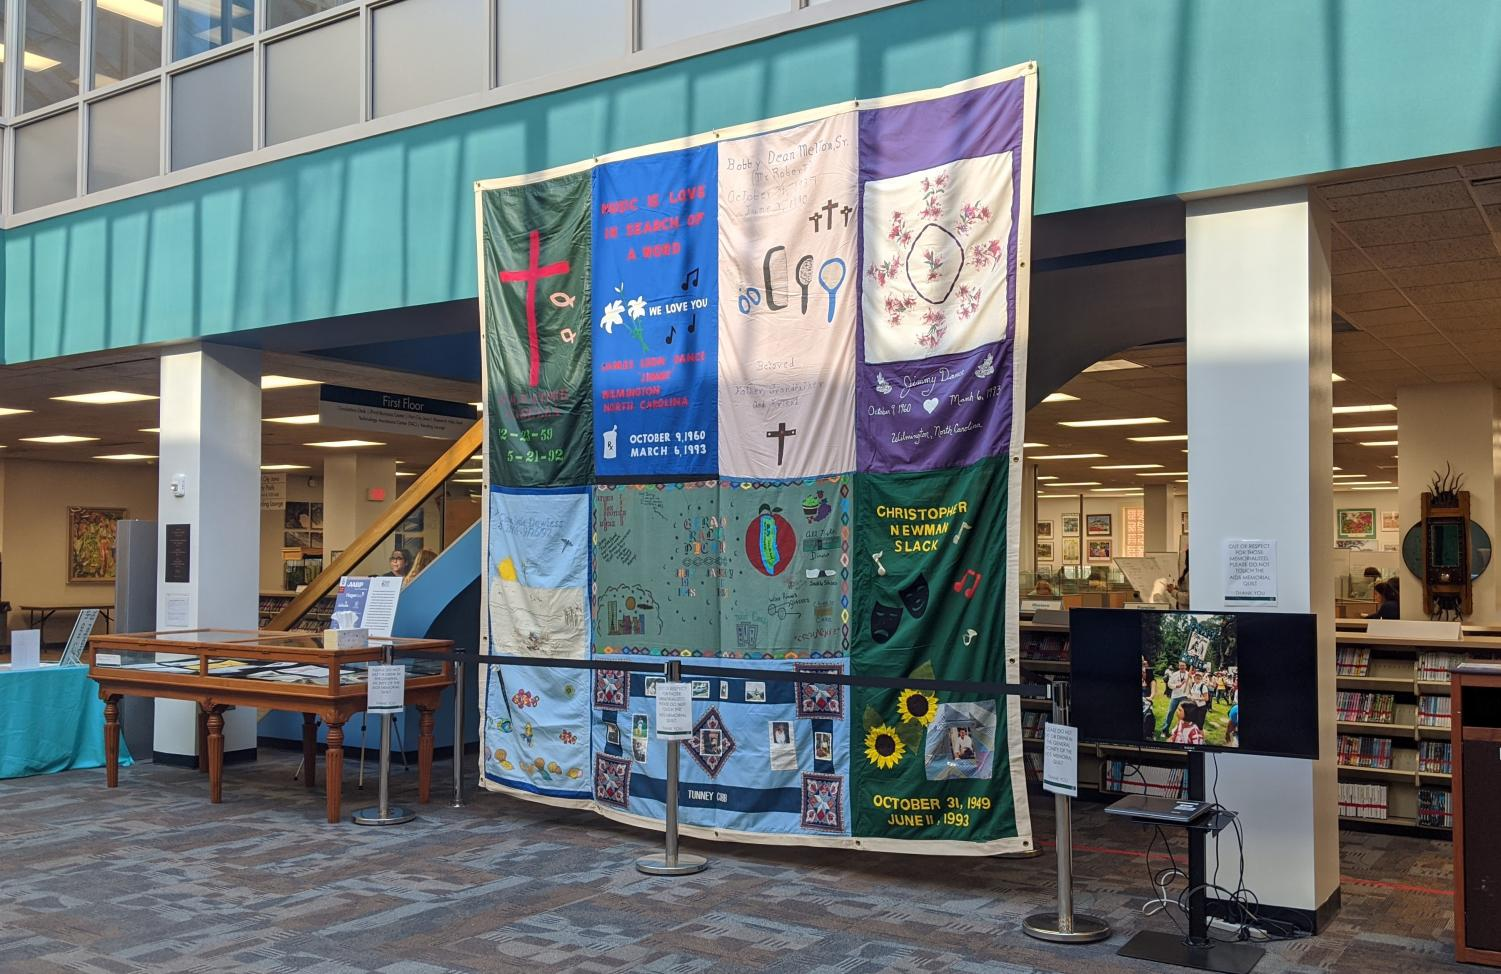 AIDS Memorial Quilt display in Randall Library on December 10.